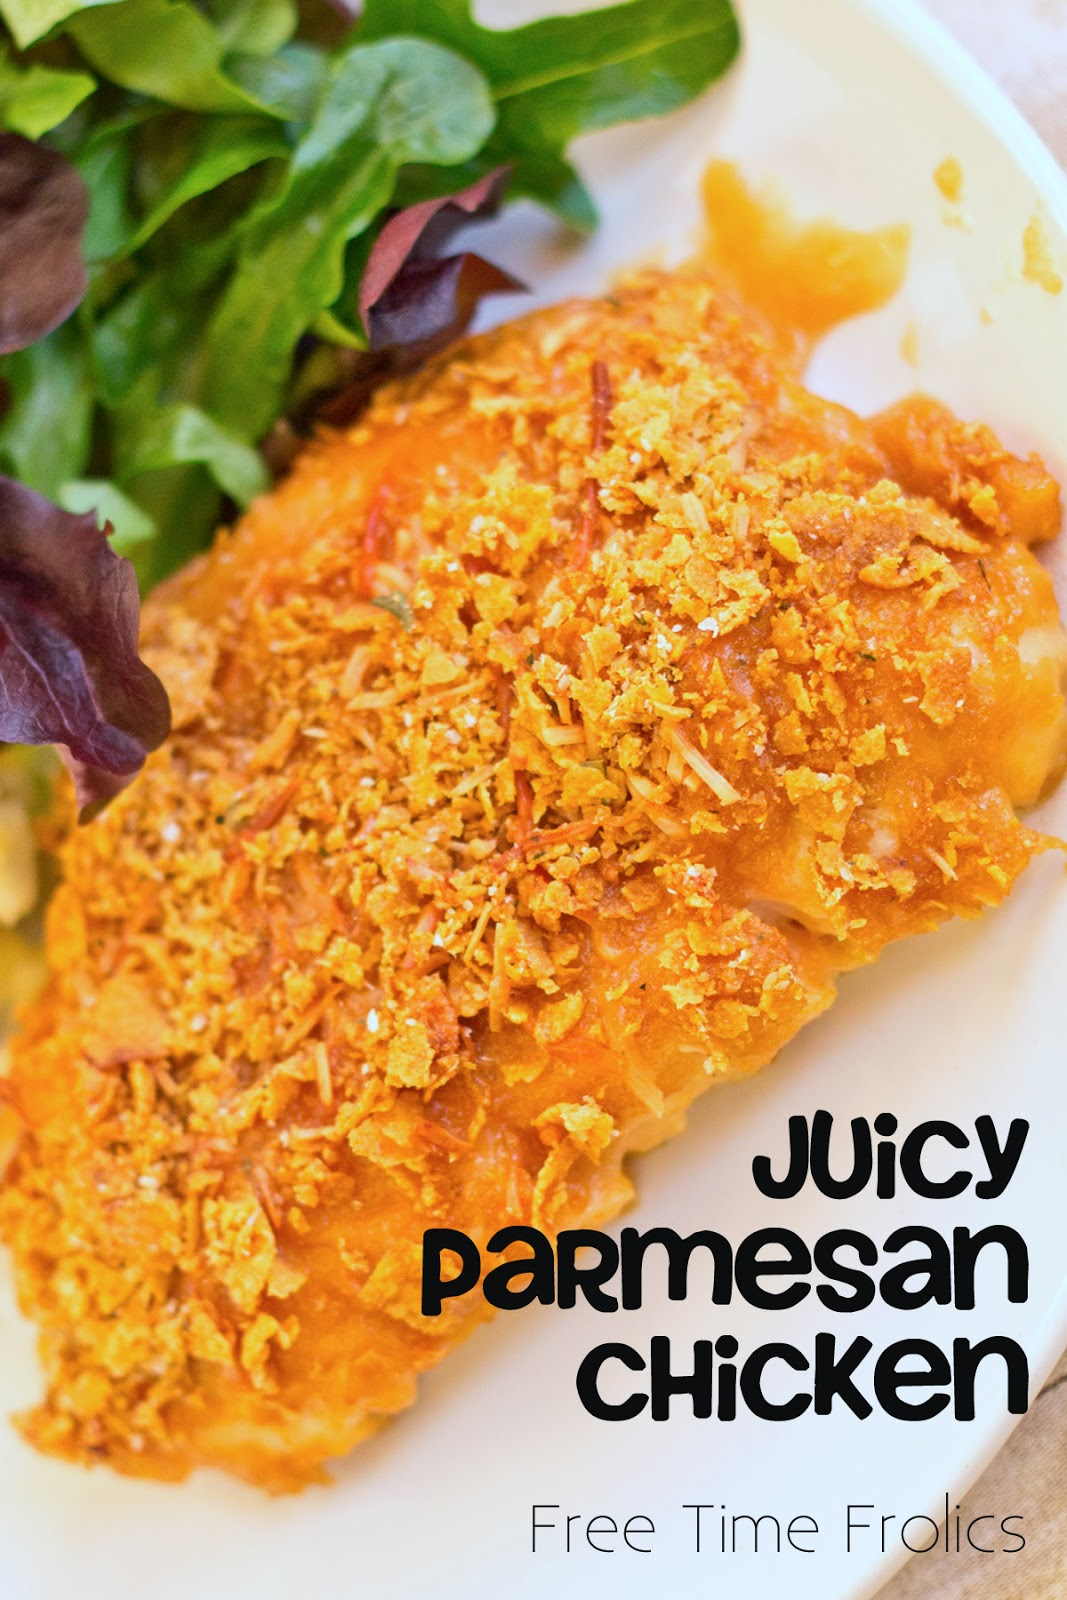 juicy parmesan chicken www.freetimefrolics.com #recipe #chicken